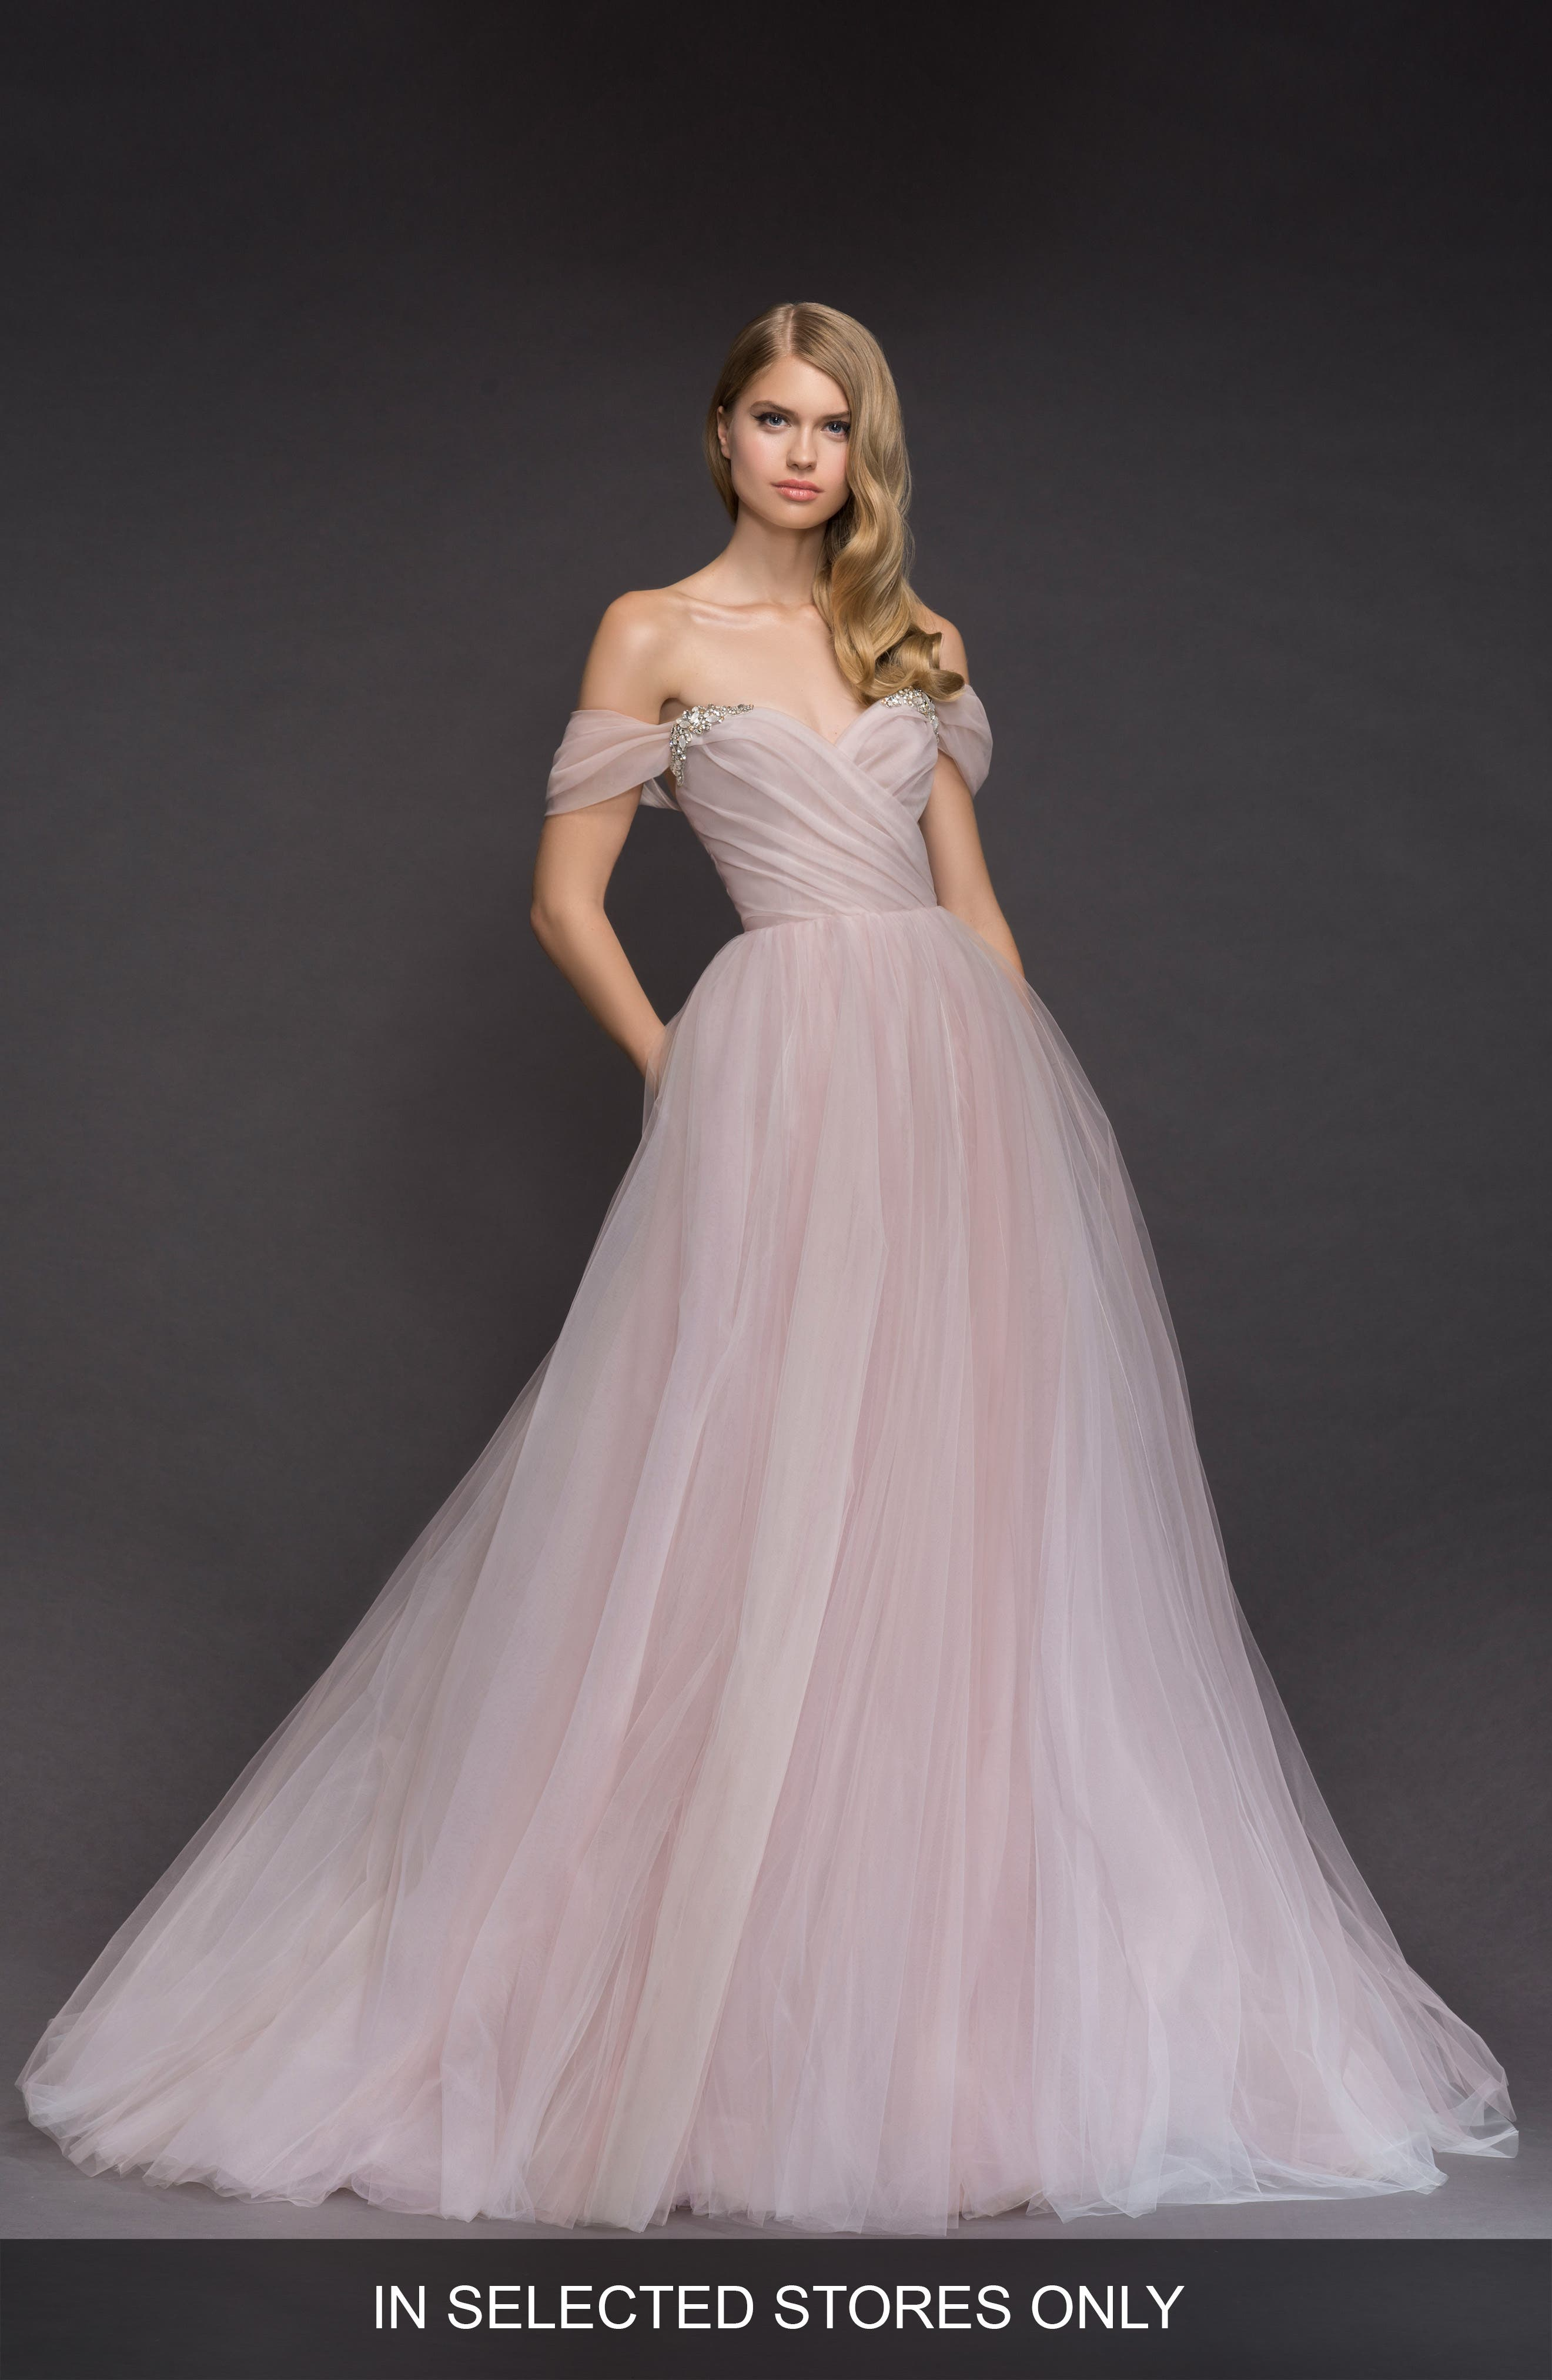 Blush by Hayley Paige Milo Off the Shoulder Tulle Ballgown